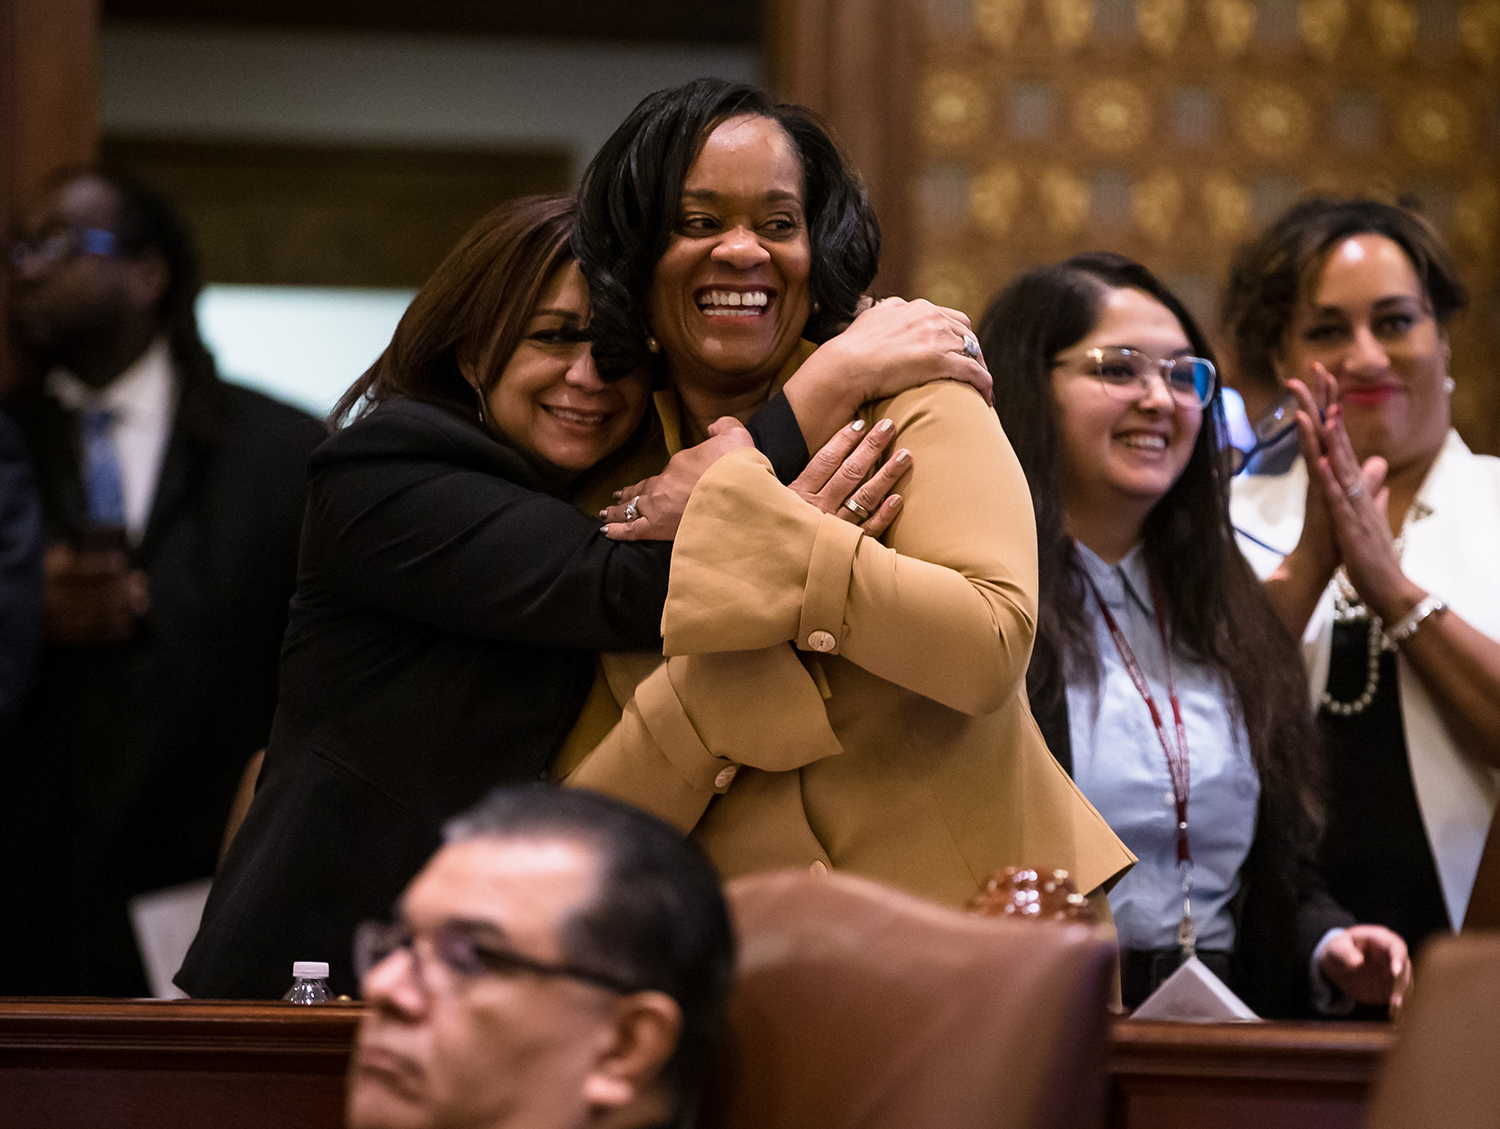 Illinois State Sen. Kimberly Lightford, D-Maywood, center, gets a hug from Illinois State Sen. Iris Martinez, D-Chicago, left, after Senate Bill 1, a bill sponsored by Lightford to raise the state's minimum wage to $15 an hour by 2025, passed the Senate on a vote of 39-18 at the Illinois State Capitol, Thursday, Feb. 7, 2019, in Springfield, Ill. [Justin L. Fowler/The State Journal-Register]